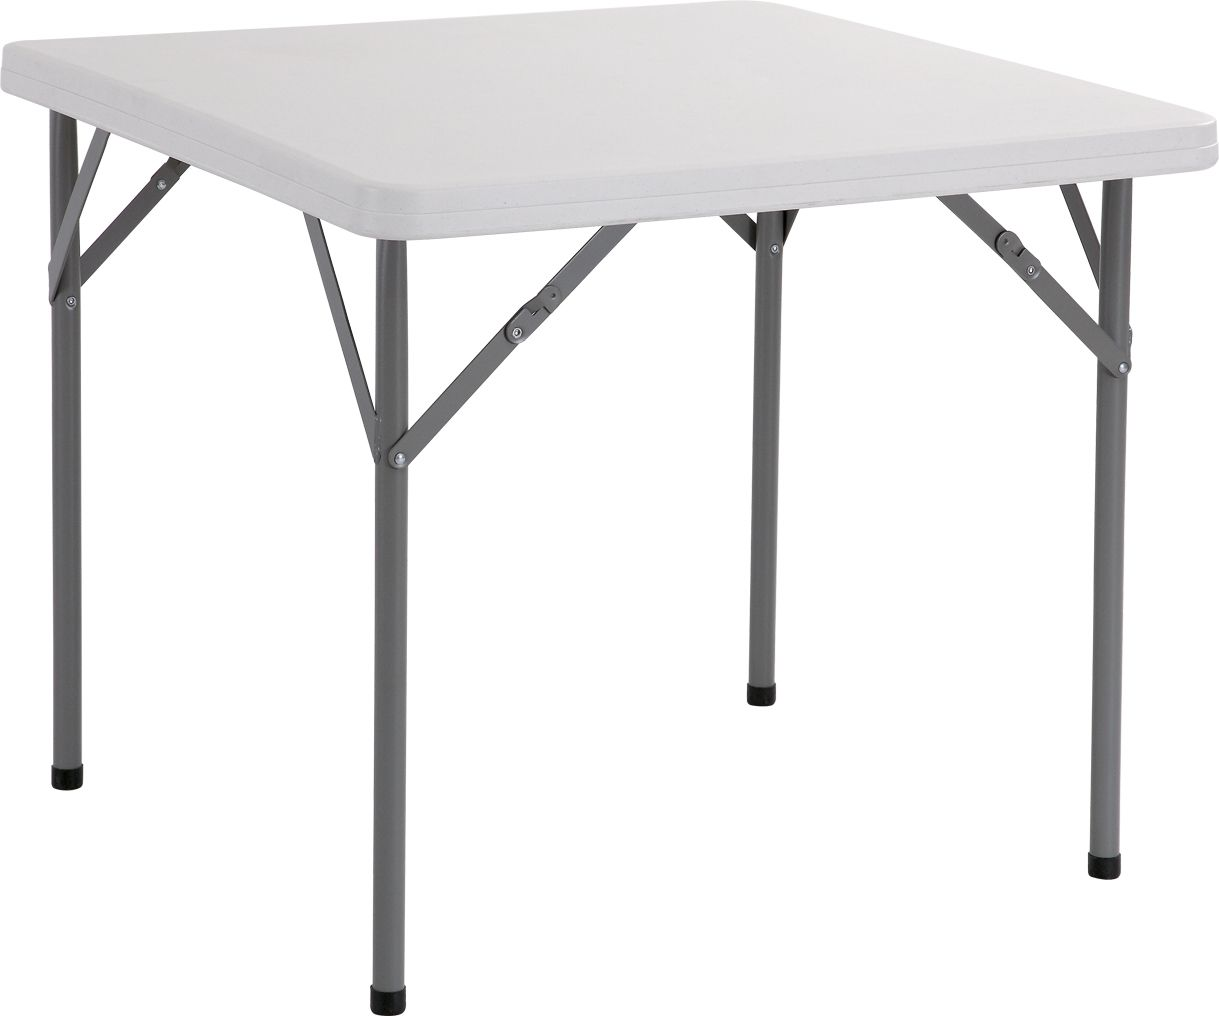 2 Foot Square Folding Table